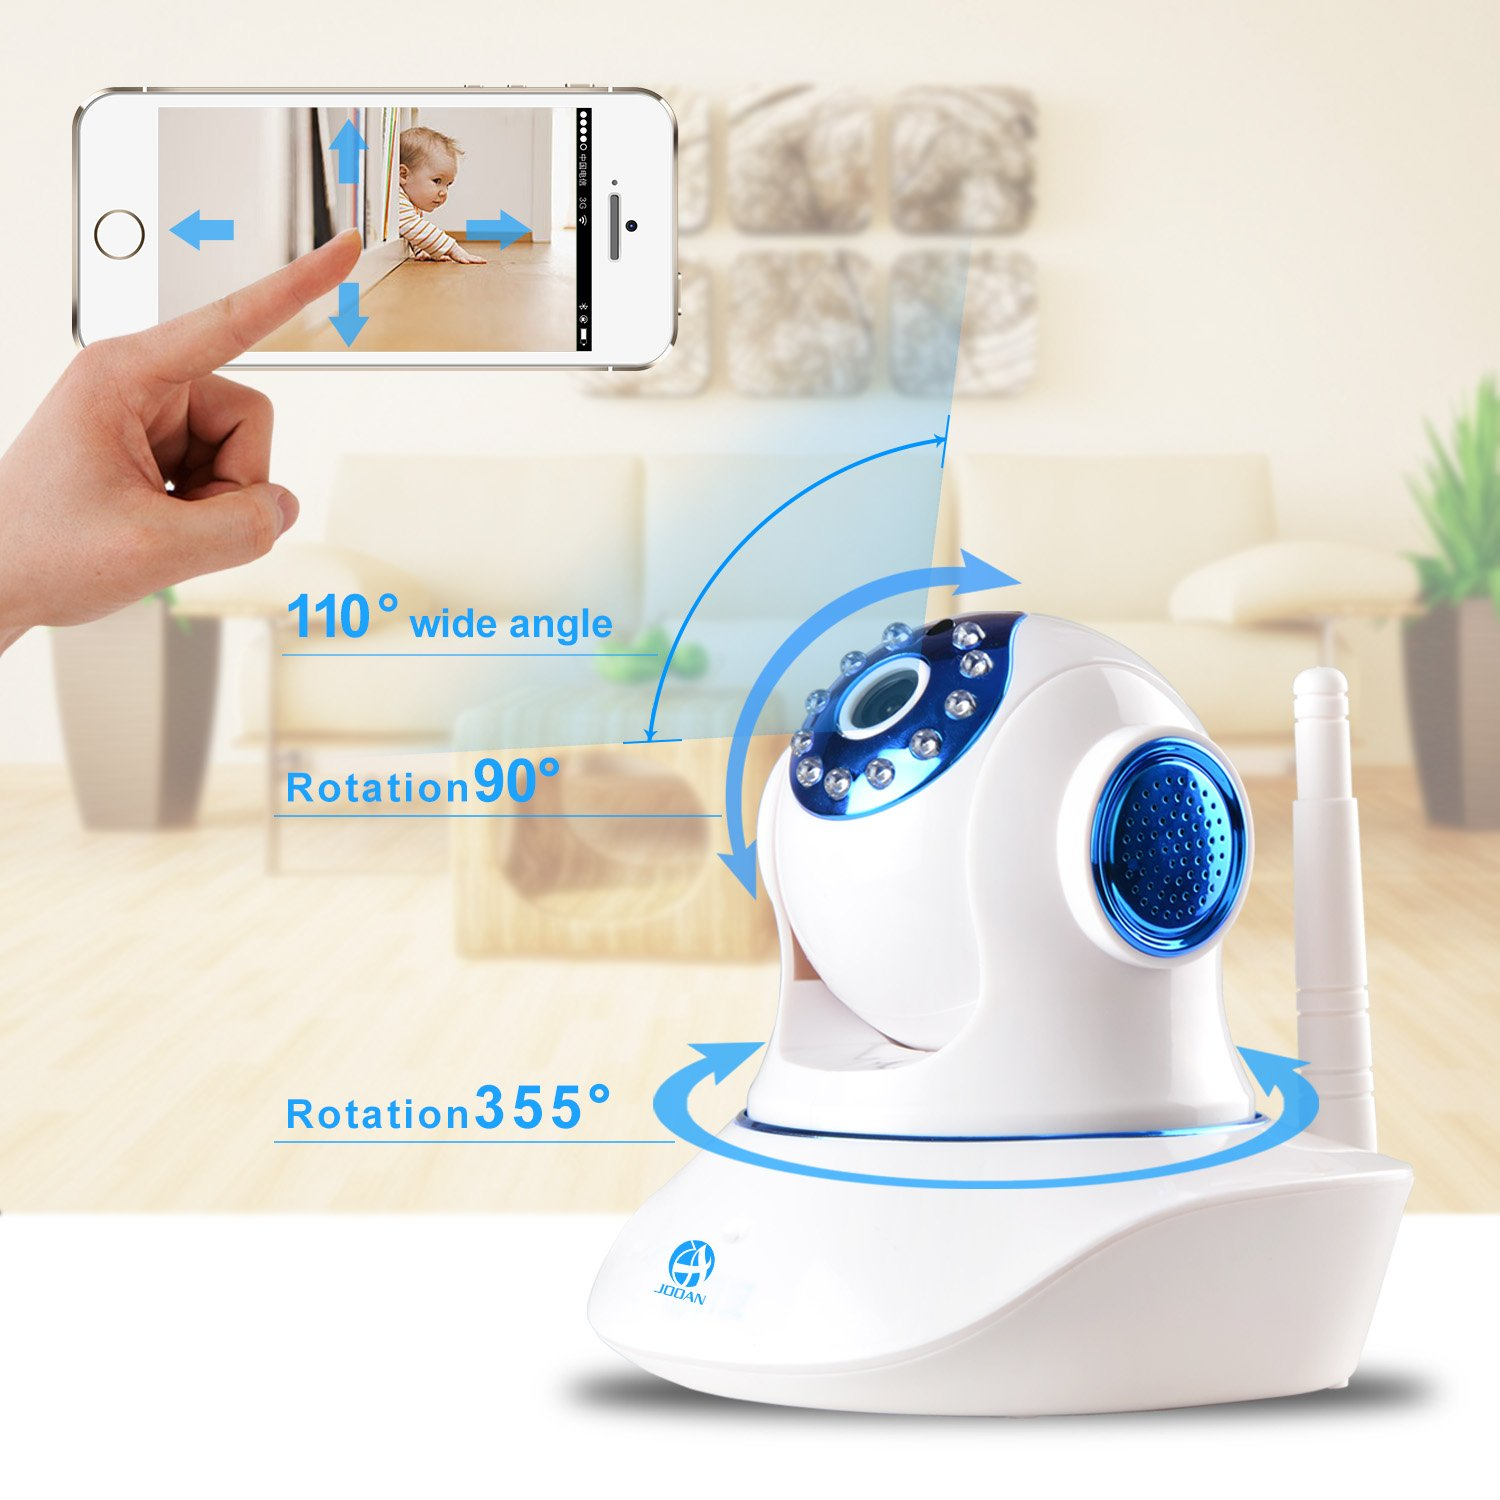 Home Network Security Appliance Amazoncom Video Baby Monitor Jooan Wireless Ip Camera Two Way